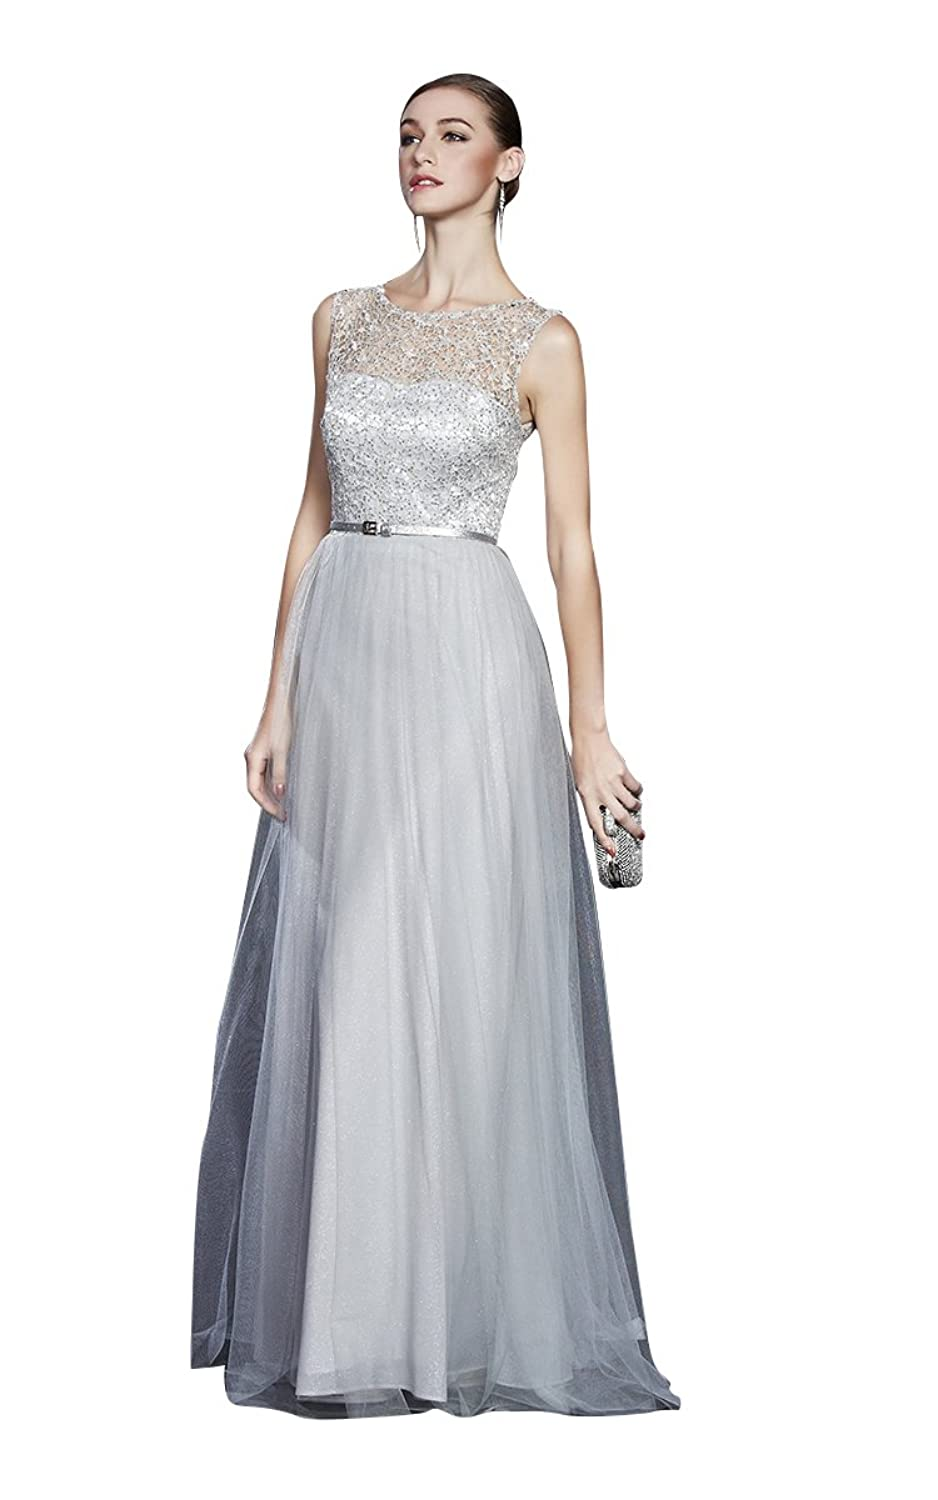 Beauty-Emily Sash Sequined Lace O-Neck Sleeveless Evening Gowns